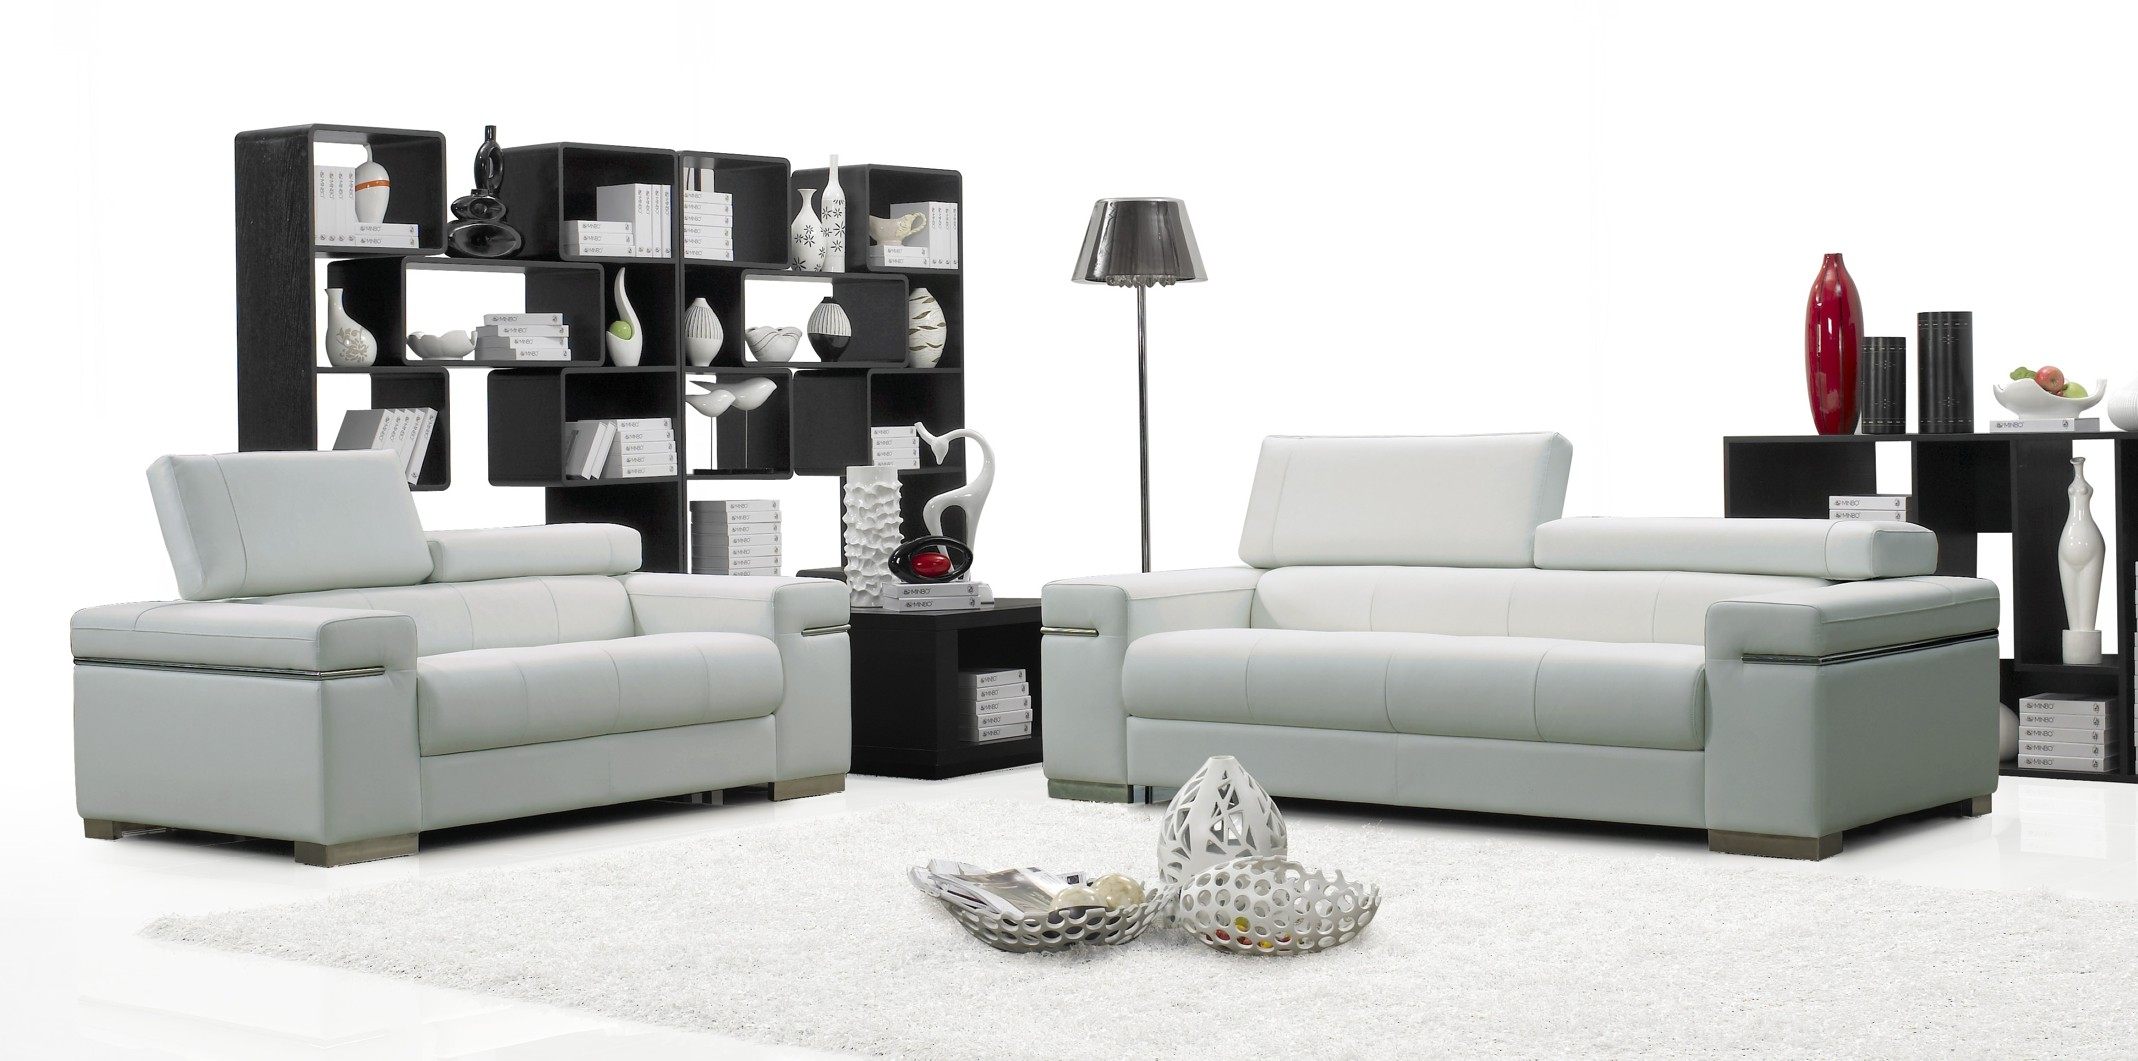 True modern furniture online homesfeed for Modern furniture for home